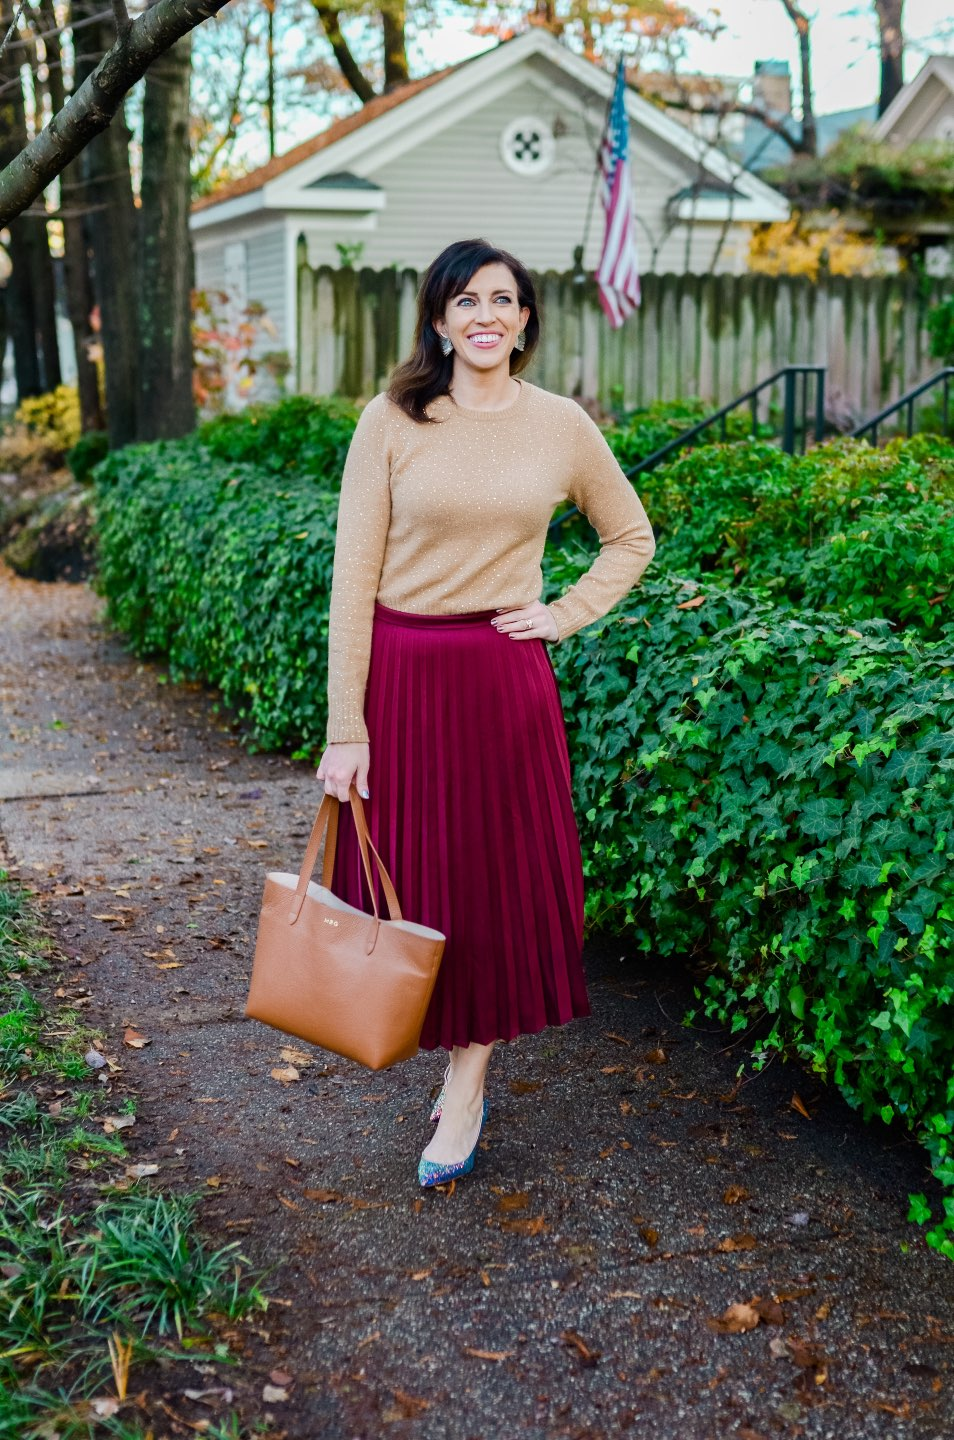 Holiday Style and Outfit Inspiration - I'm Fixin' To - @mbg0112 | Holiday Style and Outfit Inspiration by popular North Carolina fashion blog, I'm Fixin' To: image of a woman outside wearing a J. Crew Gemstone sweater in supersoft yarn, J. Crew Pleated midi skirt, J. Crew Colette d'Orsay pumps in holographic glitter, Cuyana Small Structured Leather Tote, Nordstrom David Yurman Cable Classic Buckle Bracelet with 18K Gold, Nordstrom David Yurman Cable Classics Bracelet with 14K Gold, Nordstrom Mignonne Gavigan Earrings, and Sephora Bite Beauty lipstick.